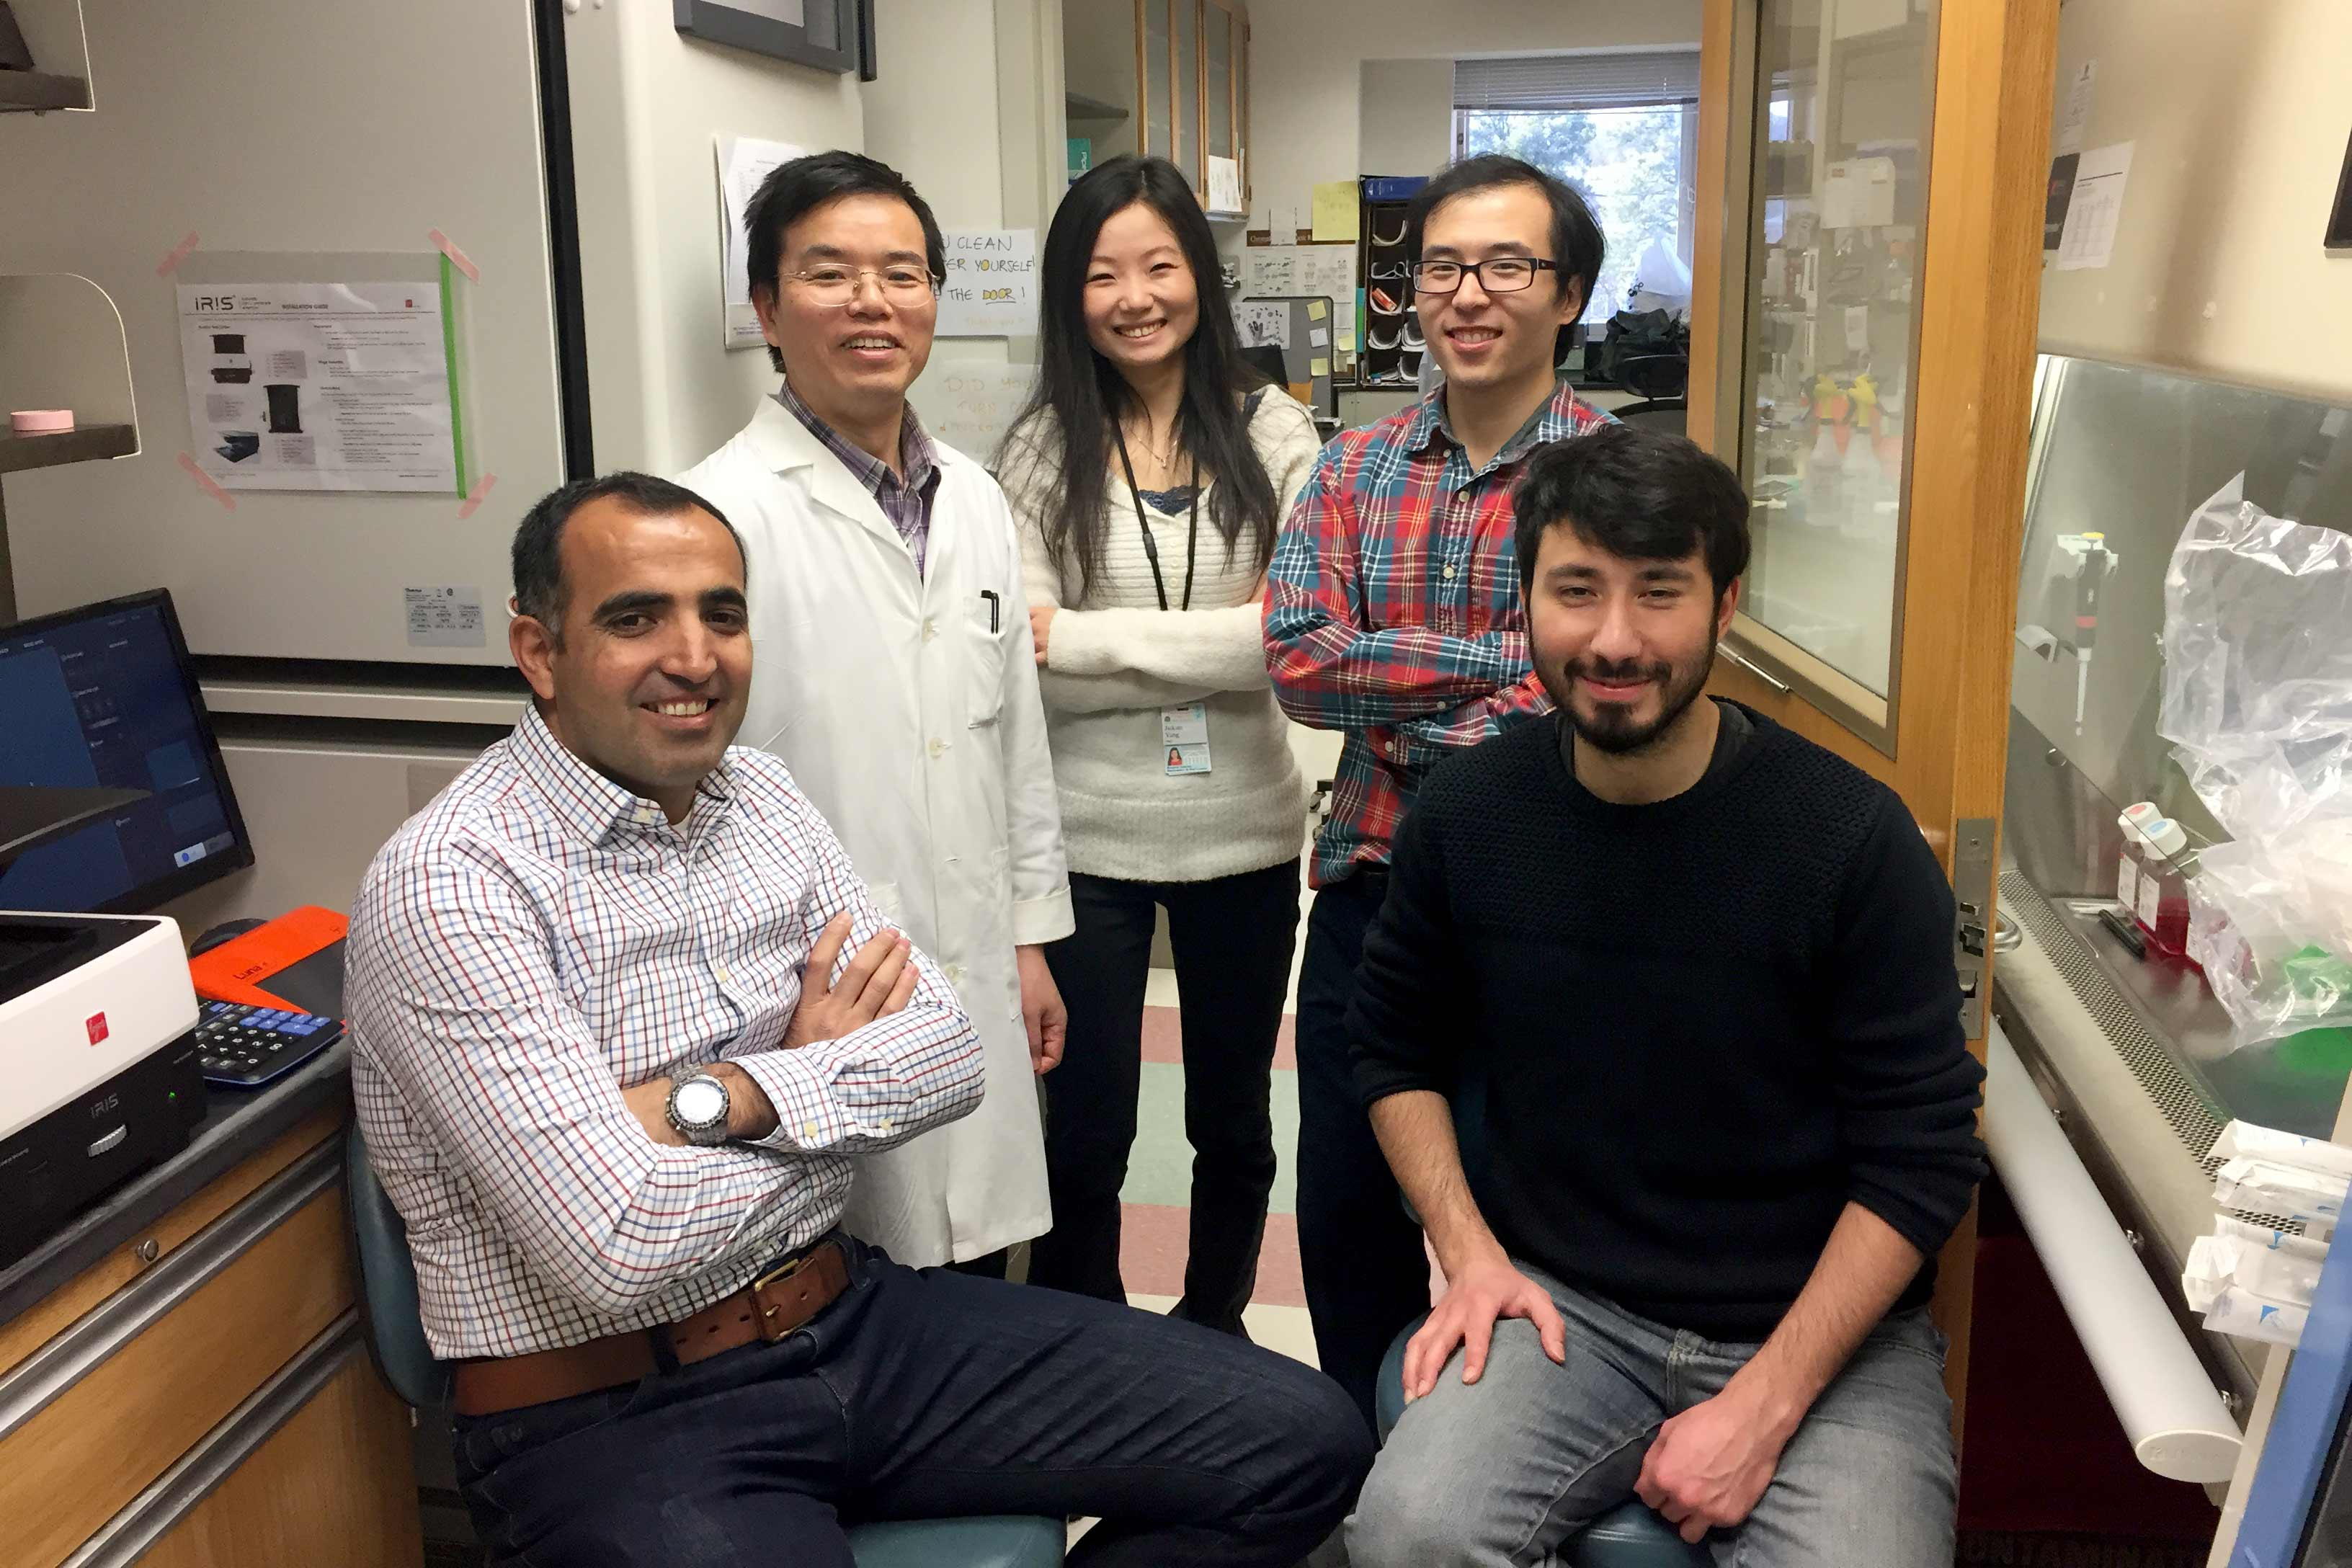 From left to right, the lab's team includes Mazhar Adli, Tom Wei, Jackie Yang, Stephen Shang and Turan Tufan.